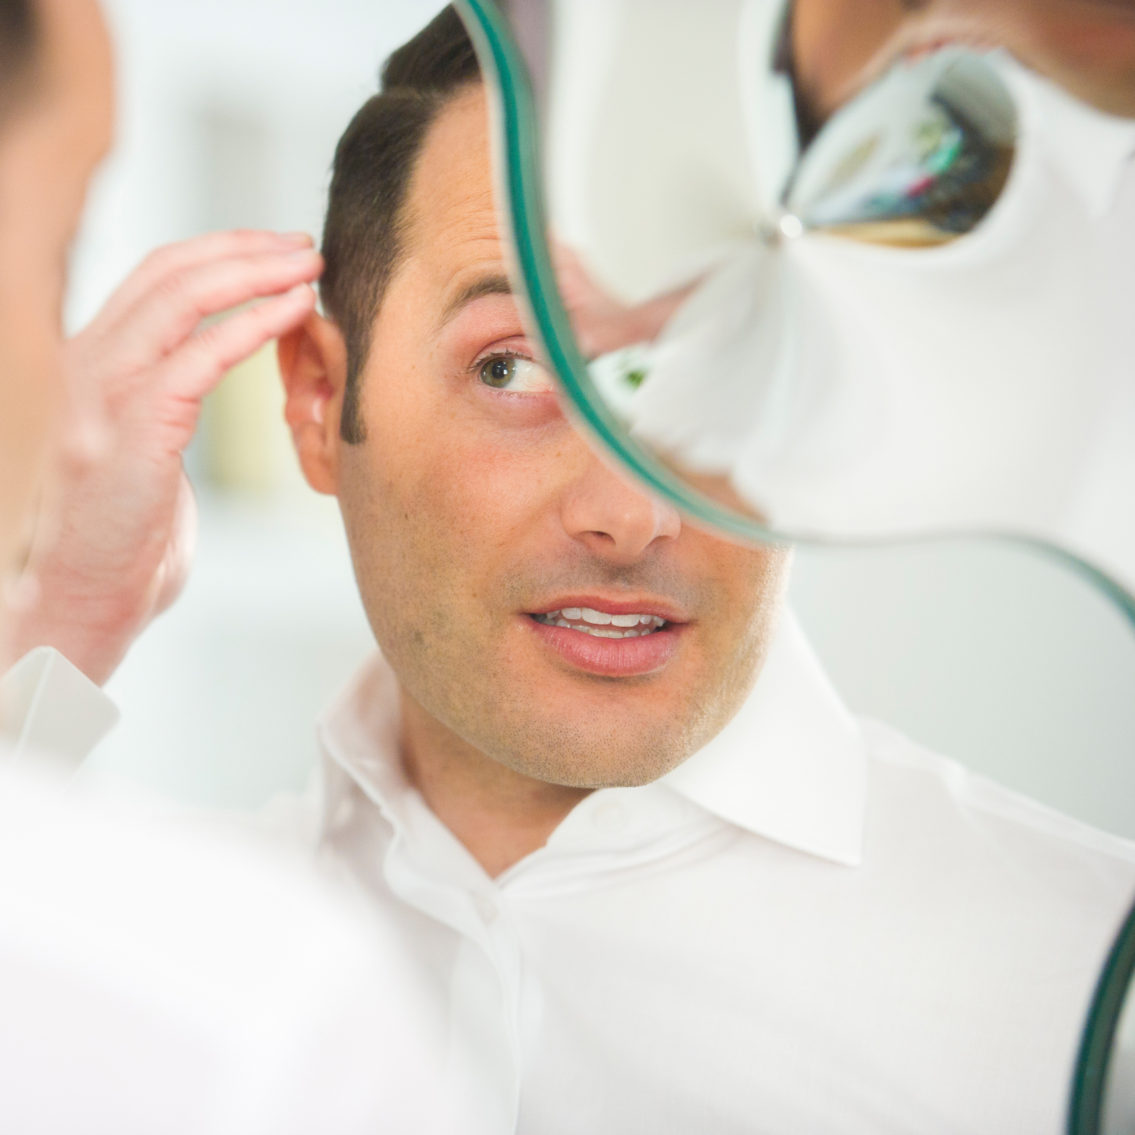 photograph of a man looking in the mirror and fixing his hair